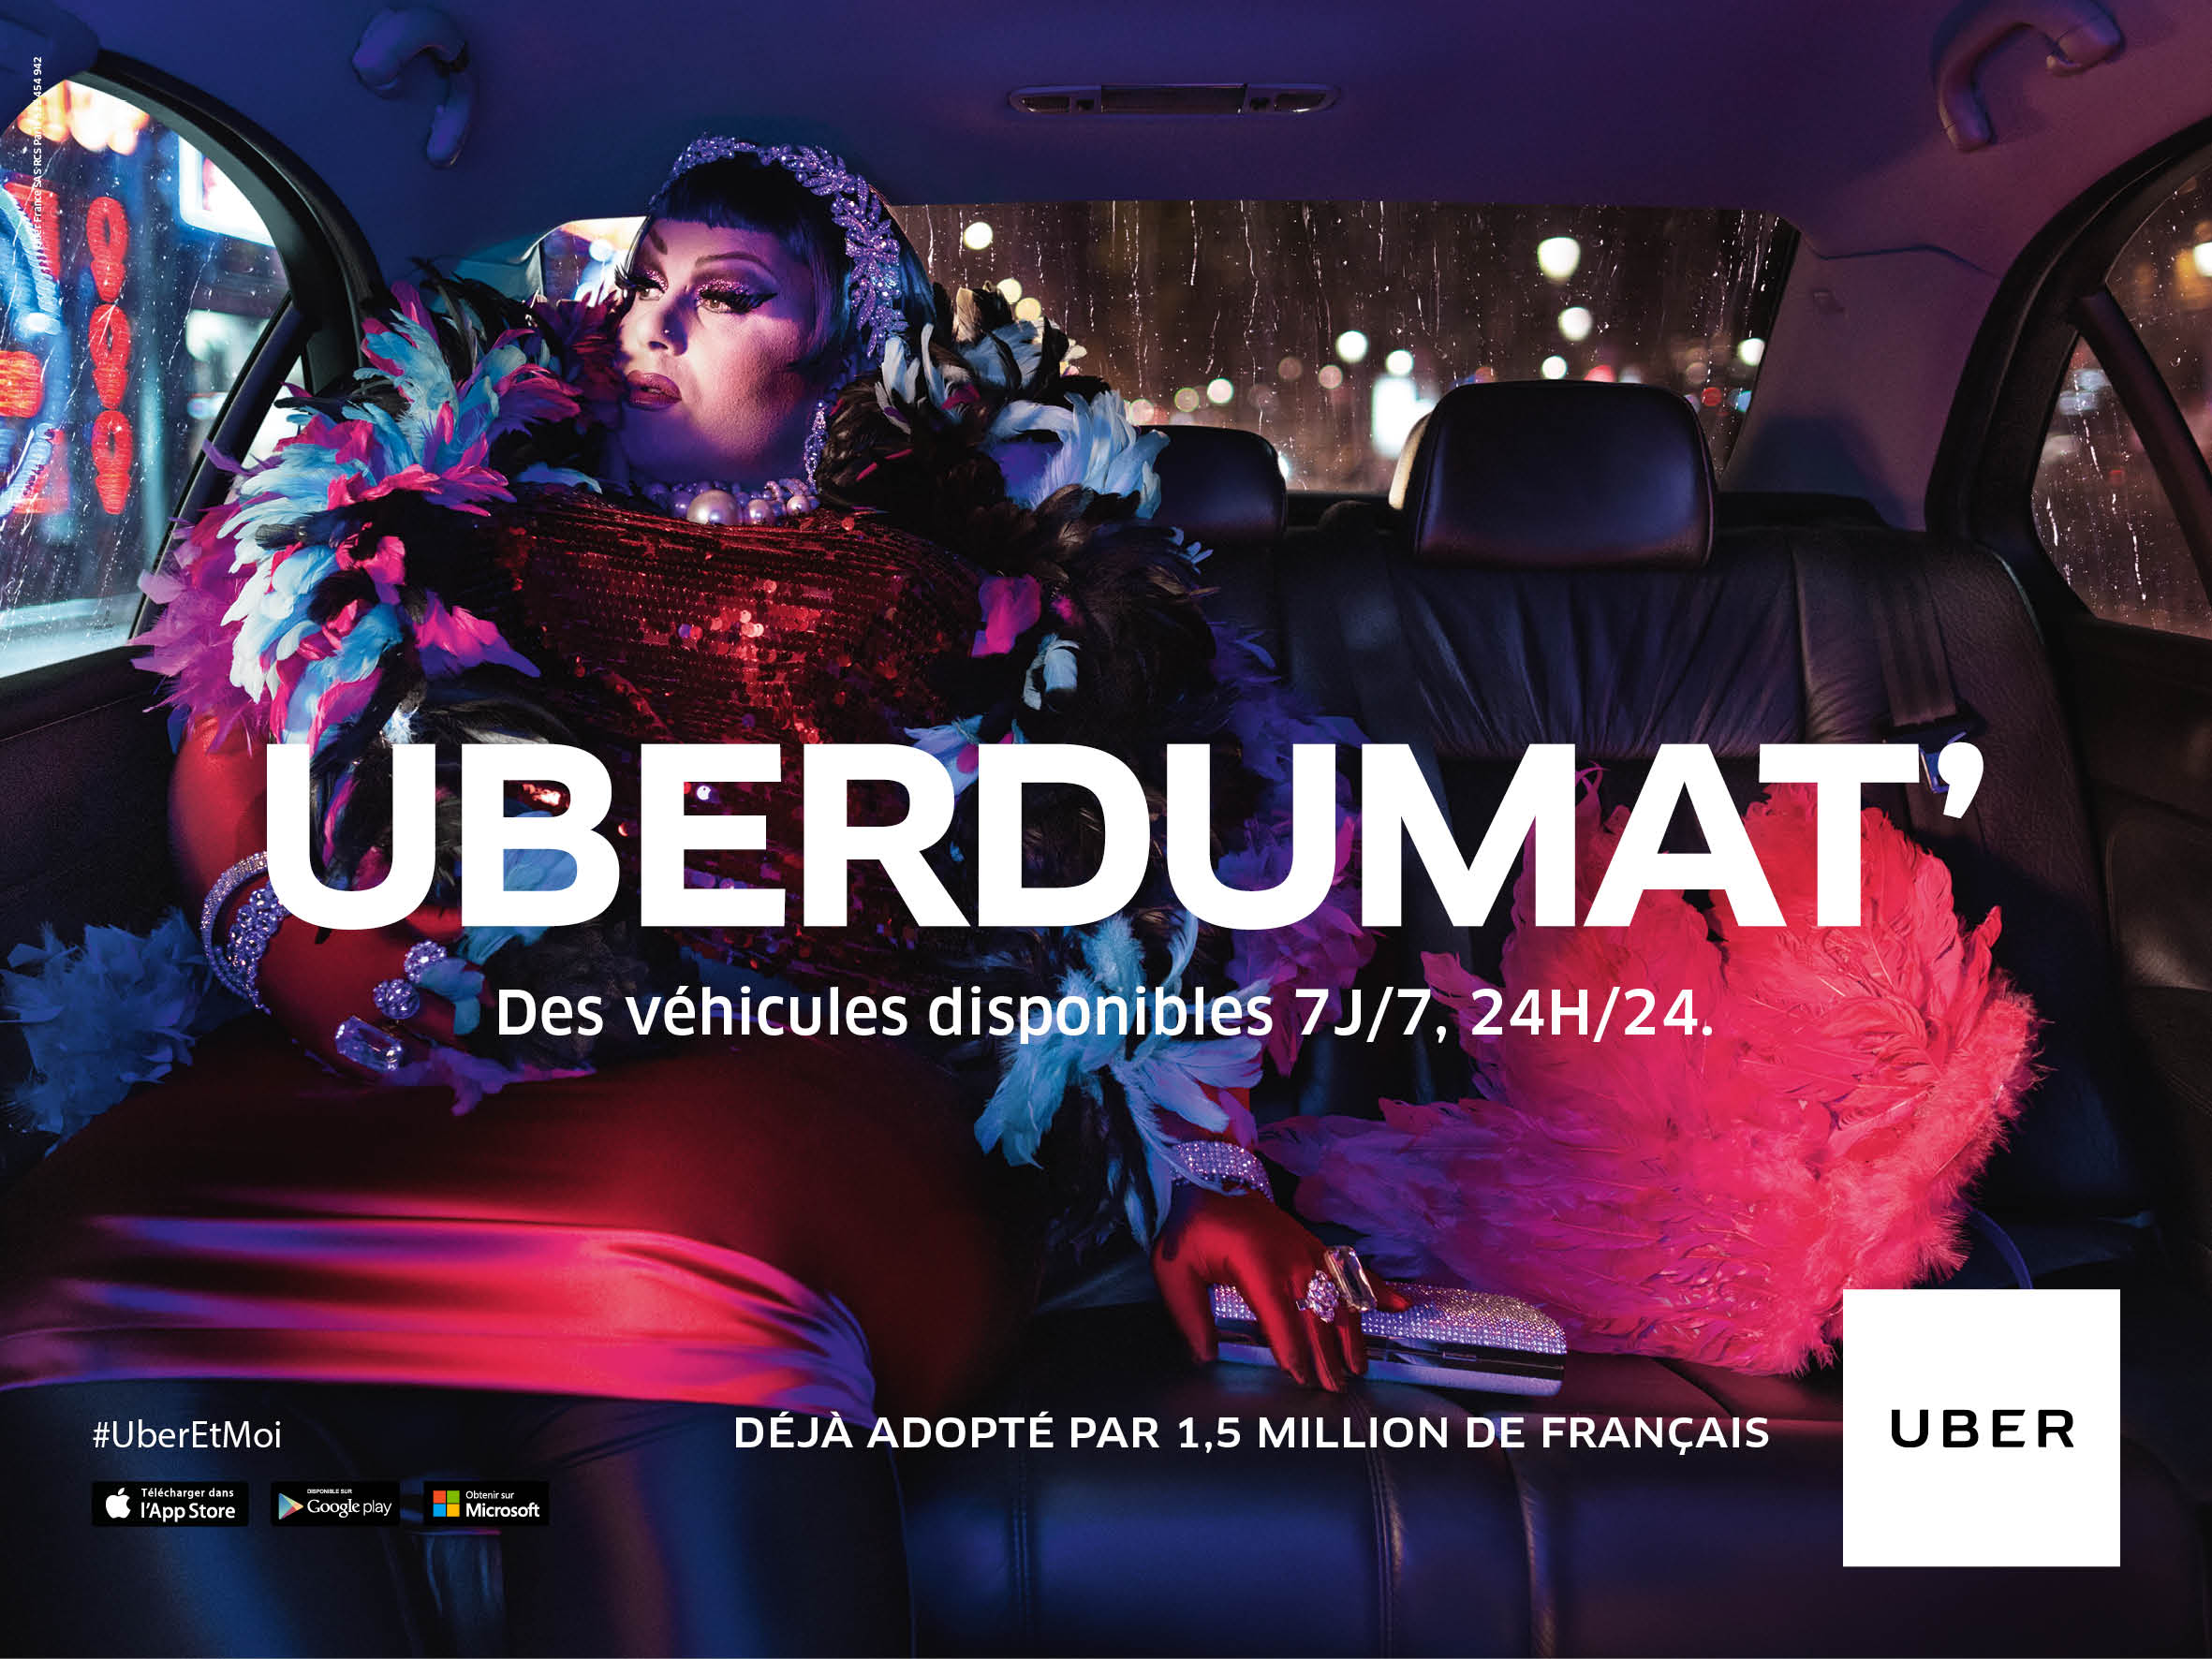 uber-france-publicite-marketing-application-utilisateurs-passagers-mars-2016-agence-marcel-publicis-2